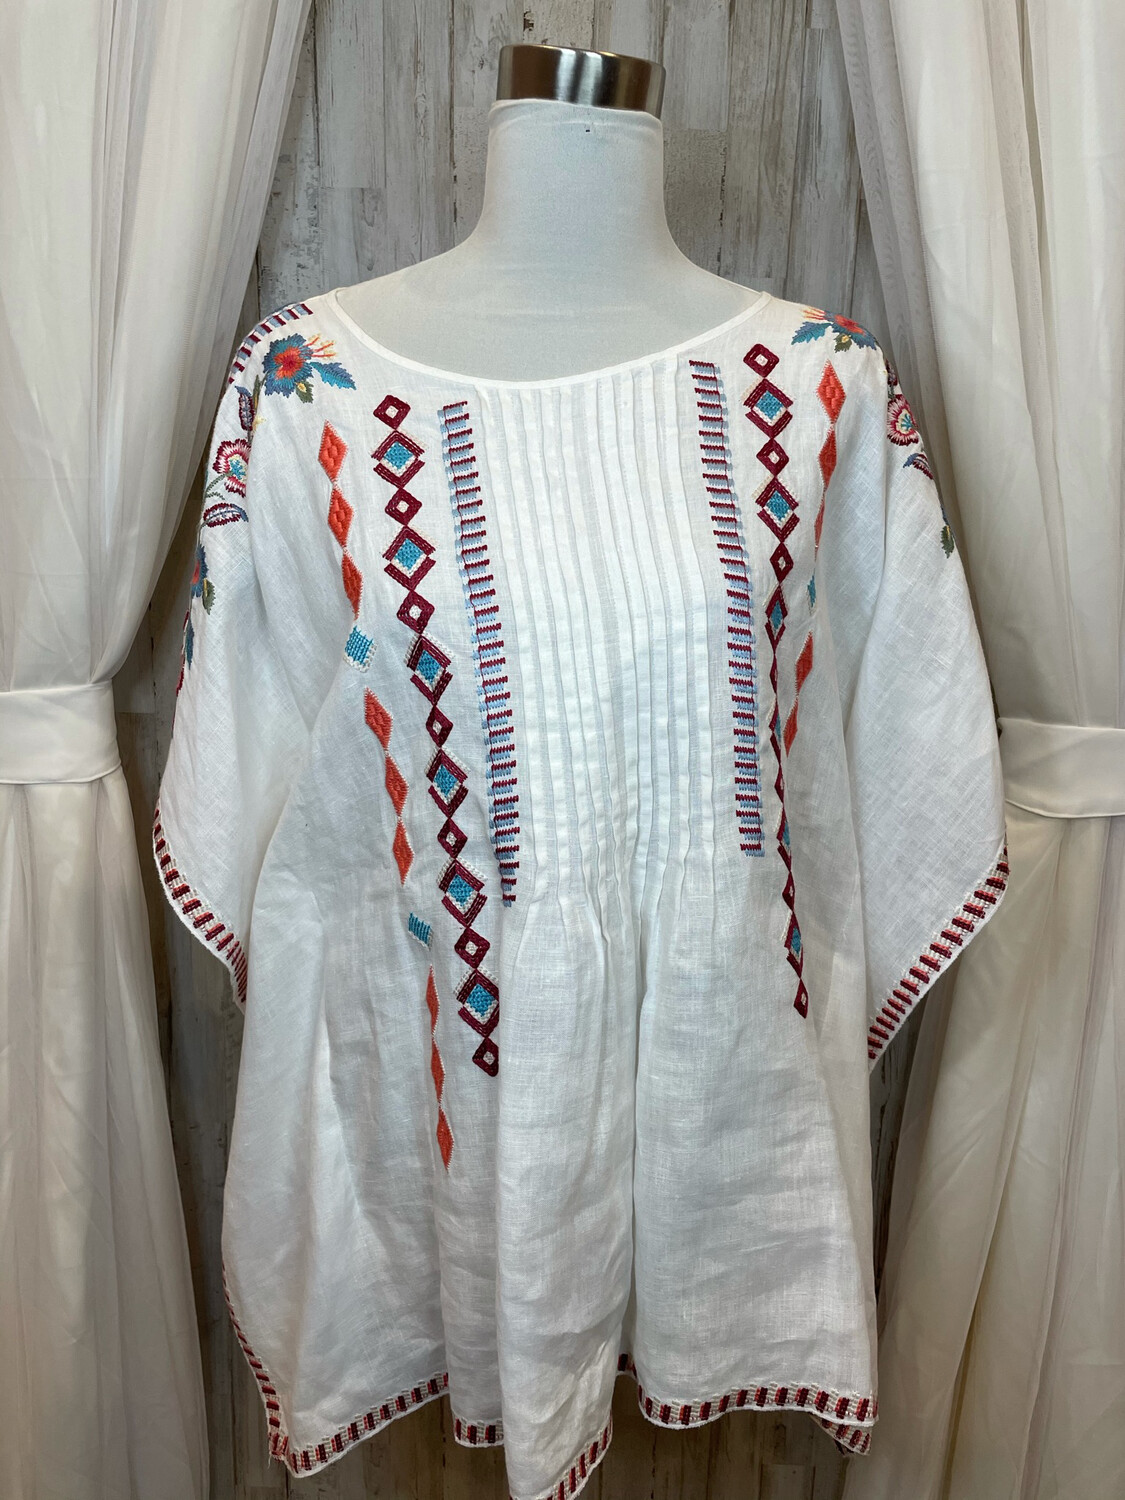 JW Los Angeles White Linen Top w/Colored Embroidery - M